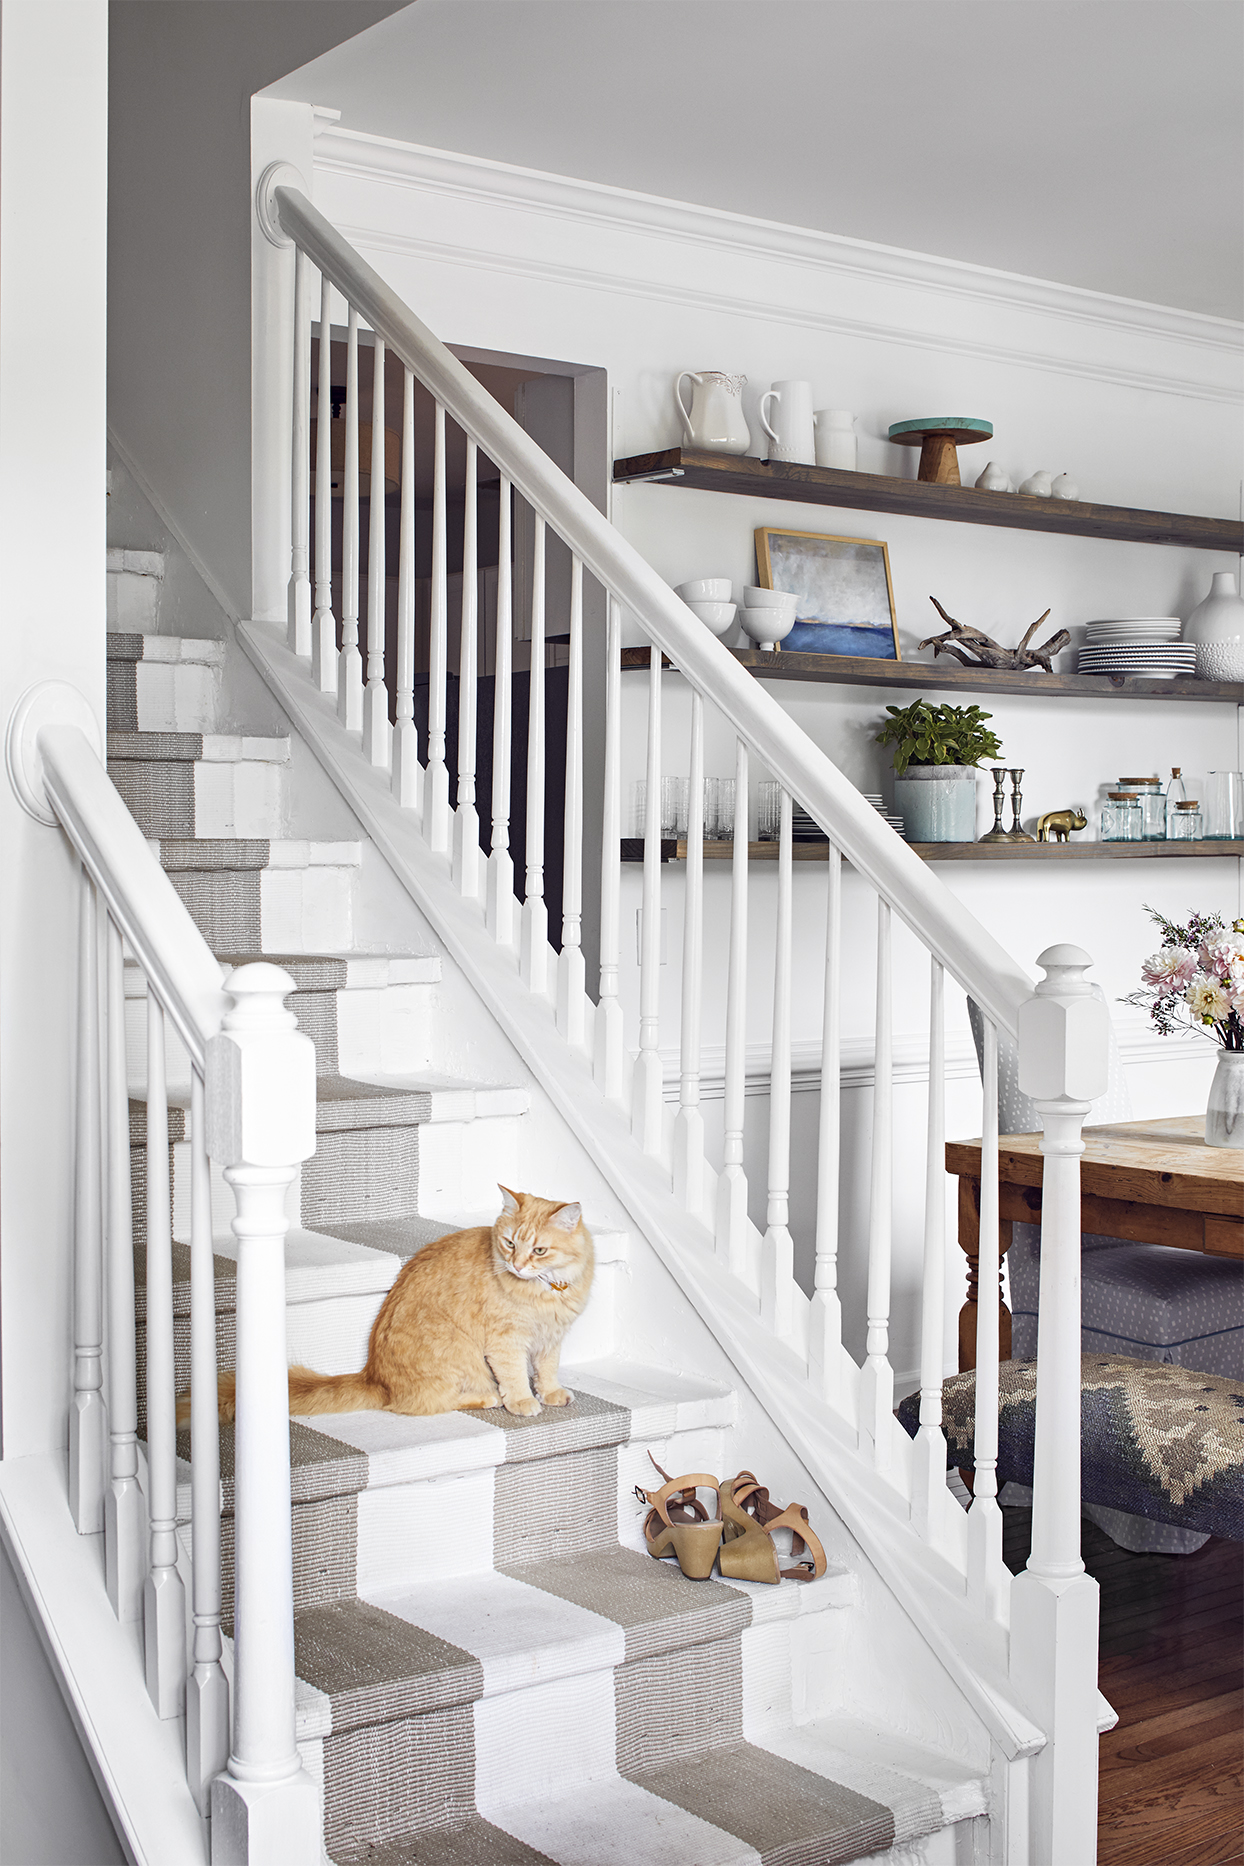 white stairs with carpet runner and cat